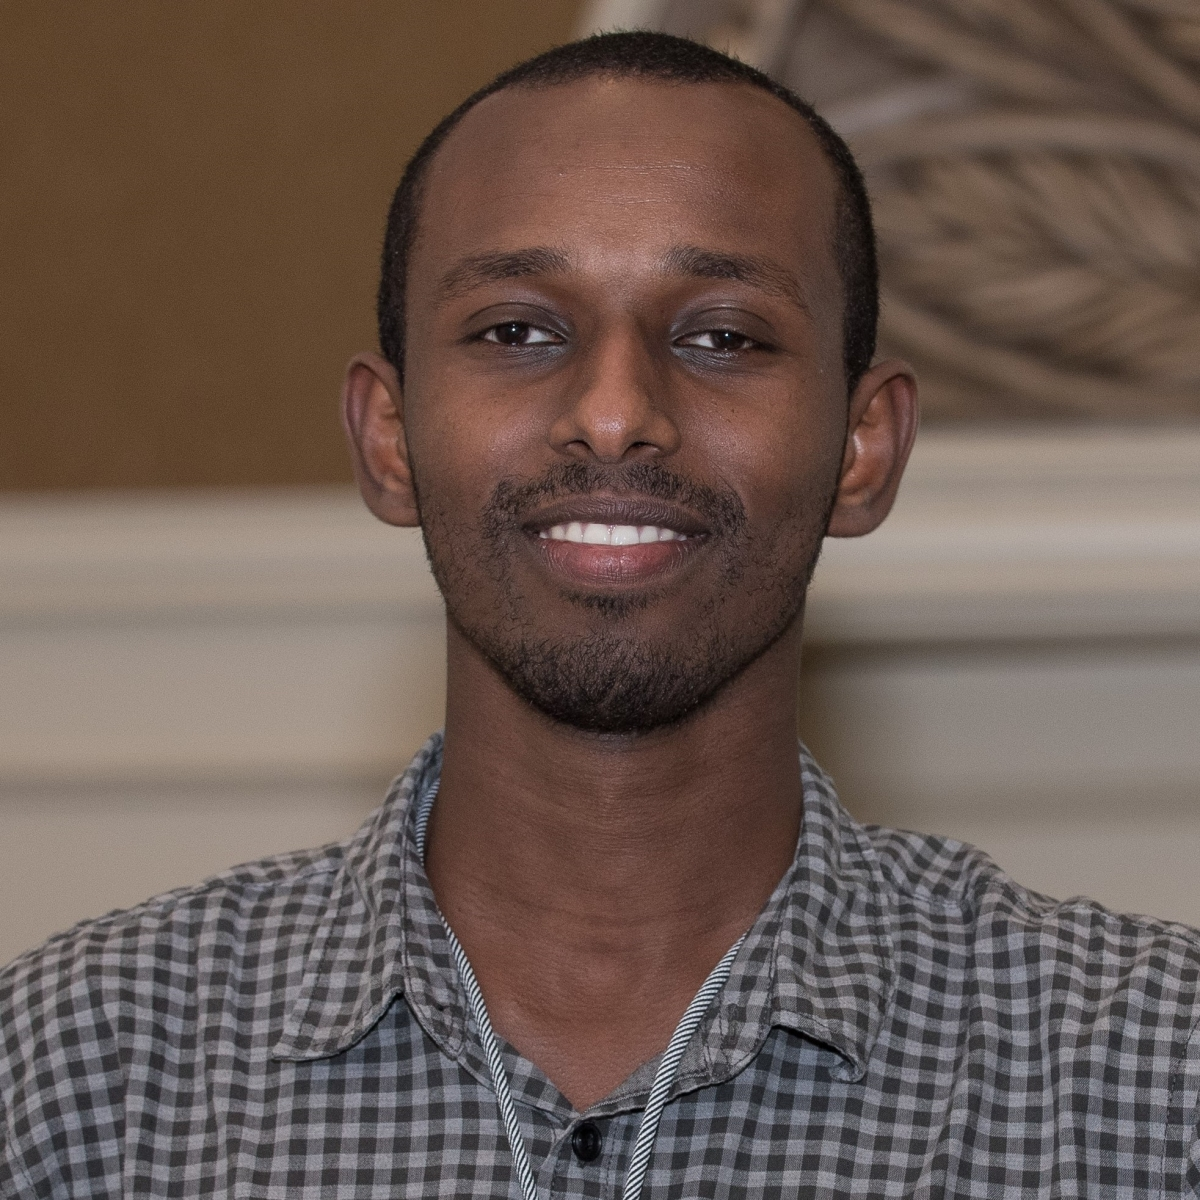 Mohamed Ahmed, SANTHE PhD trainee, Africa Health Research Institute, Durban, South Africa.